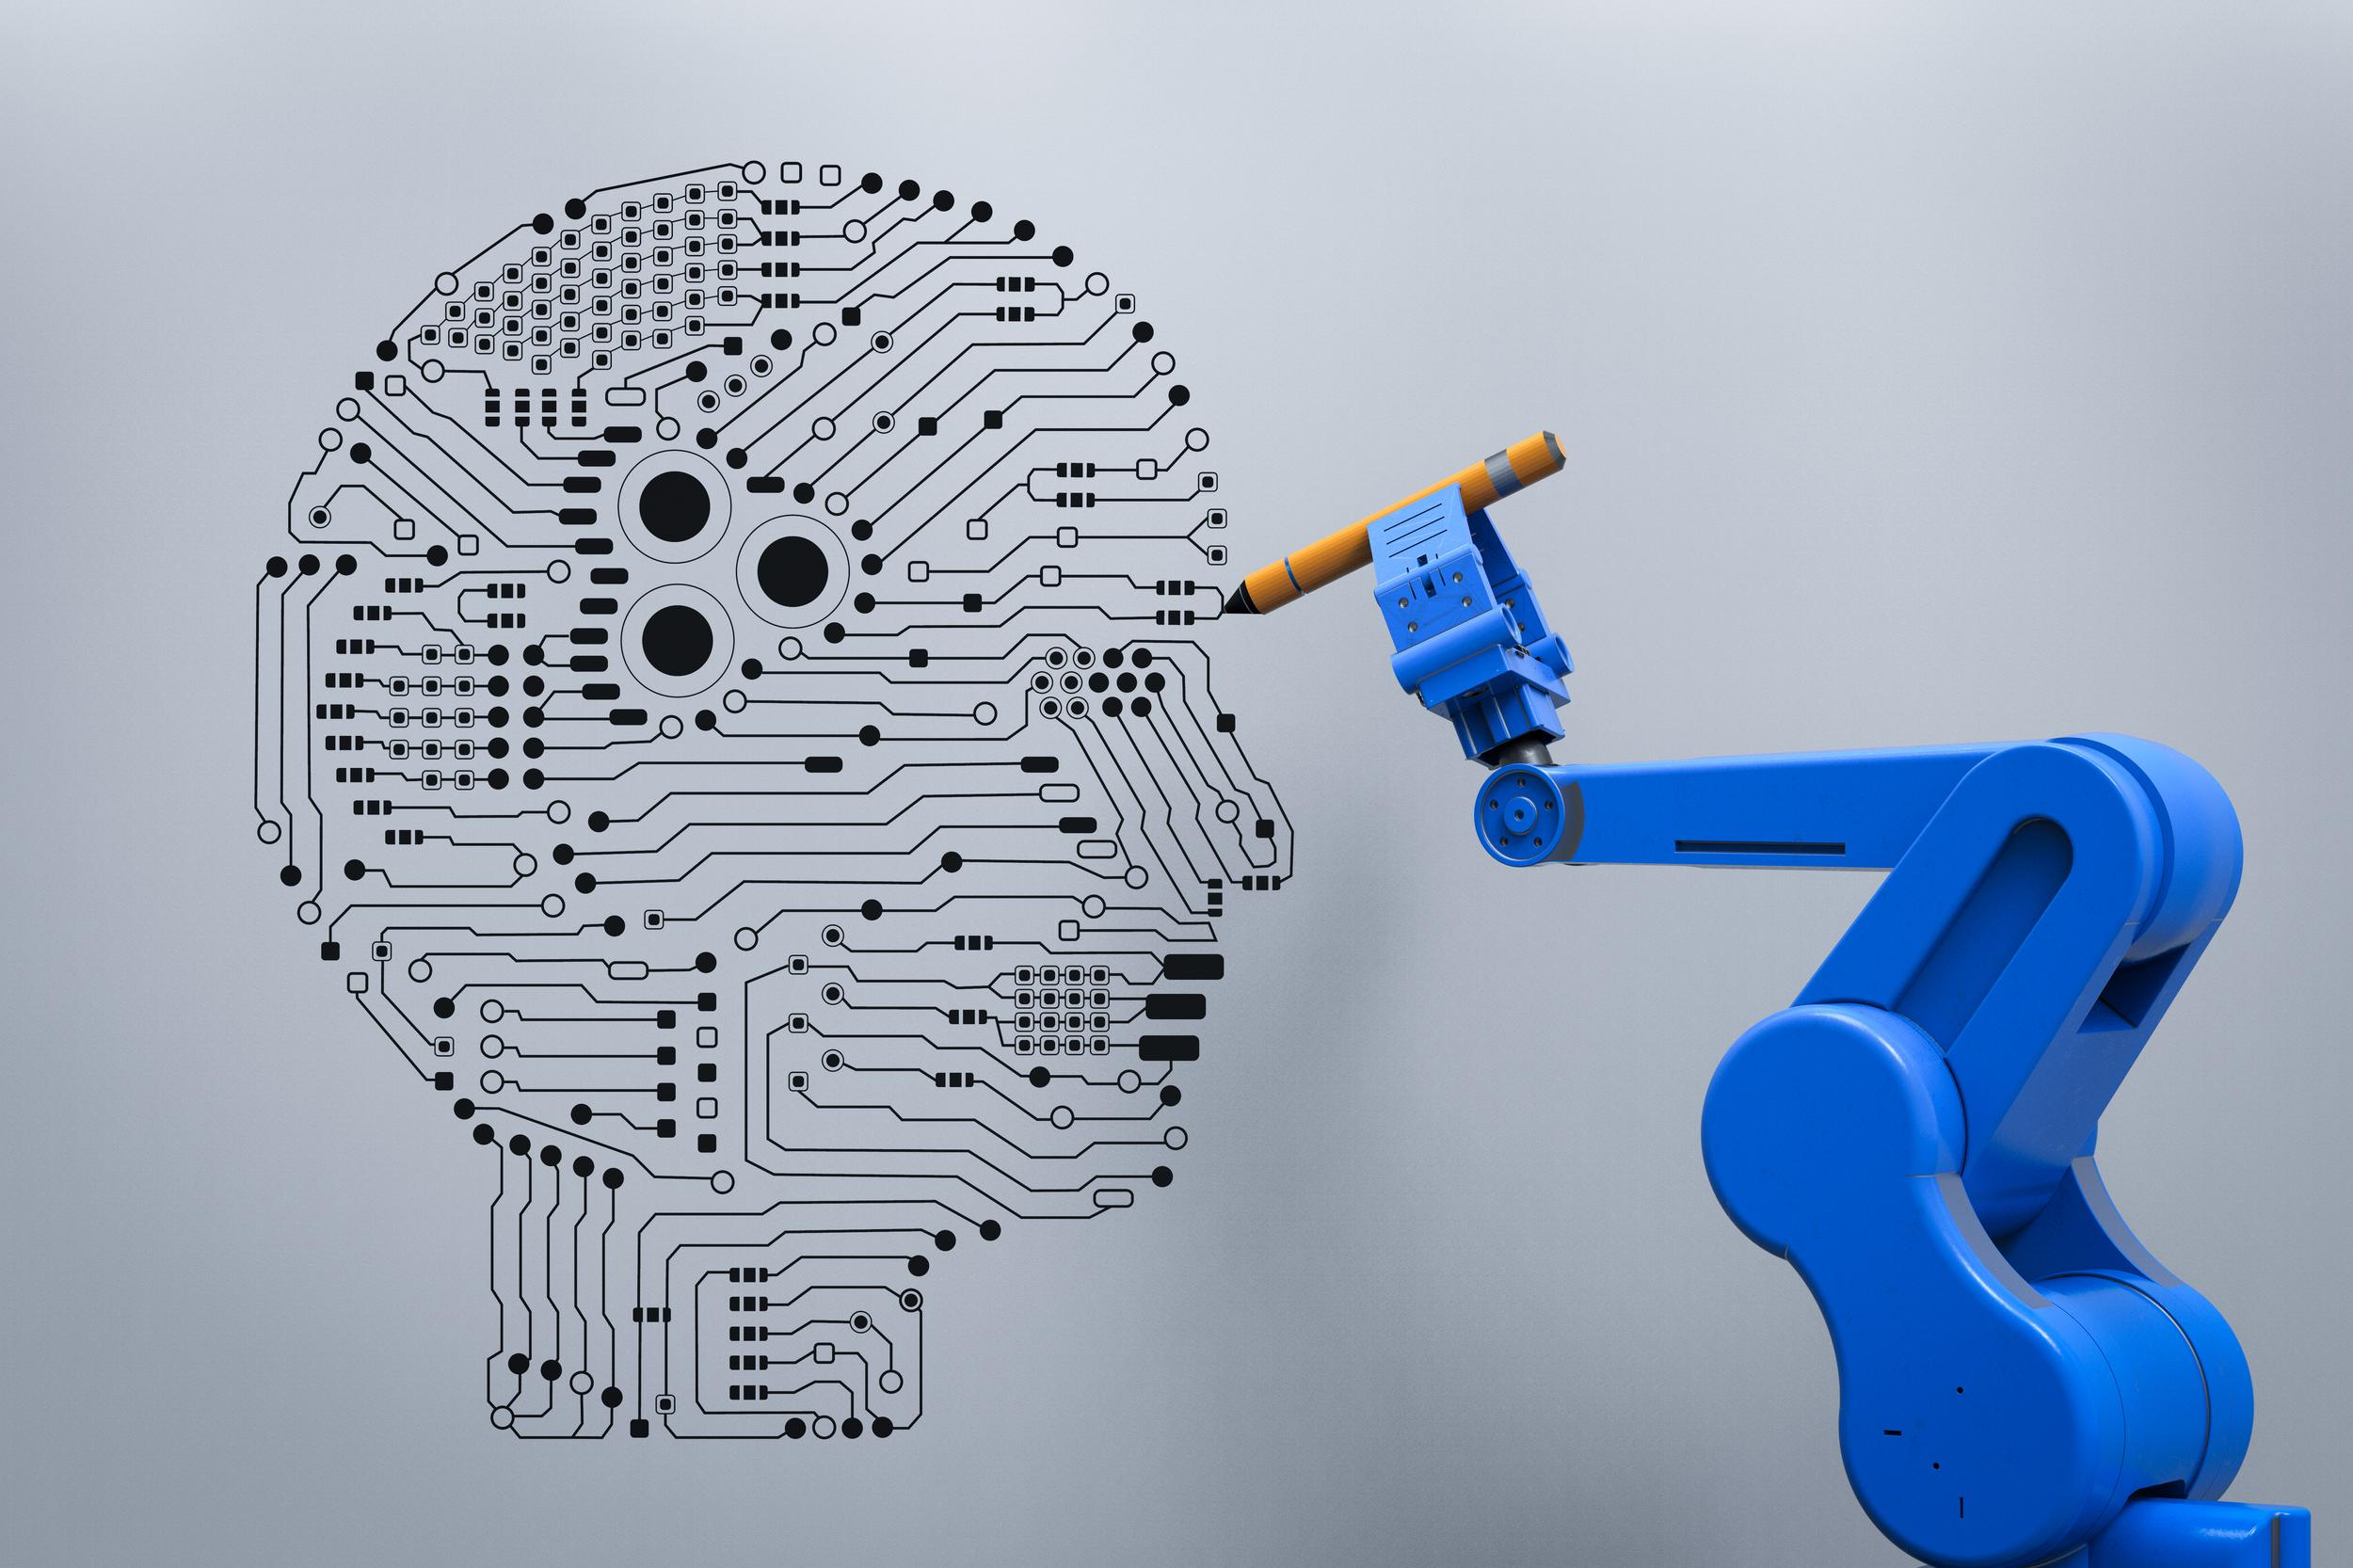 robot with ai brain